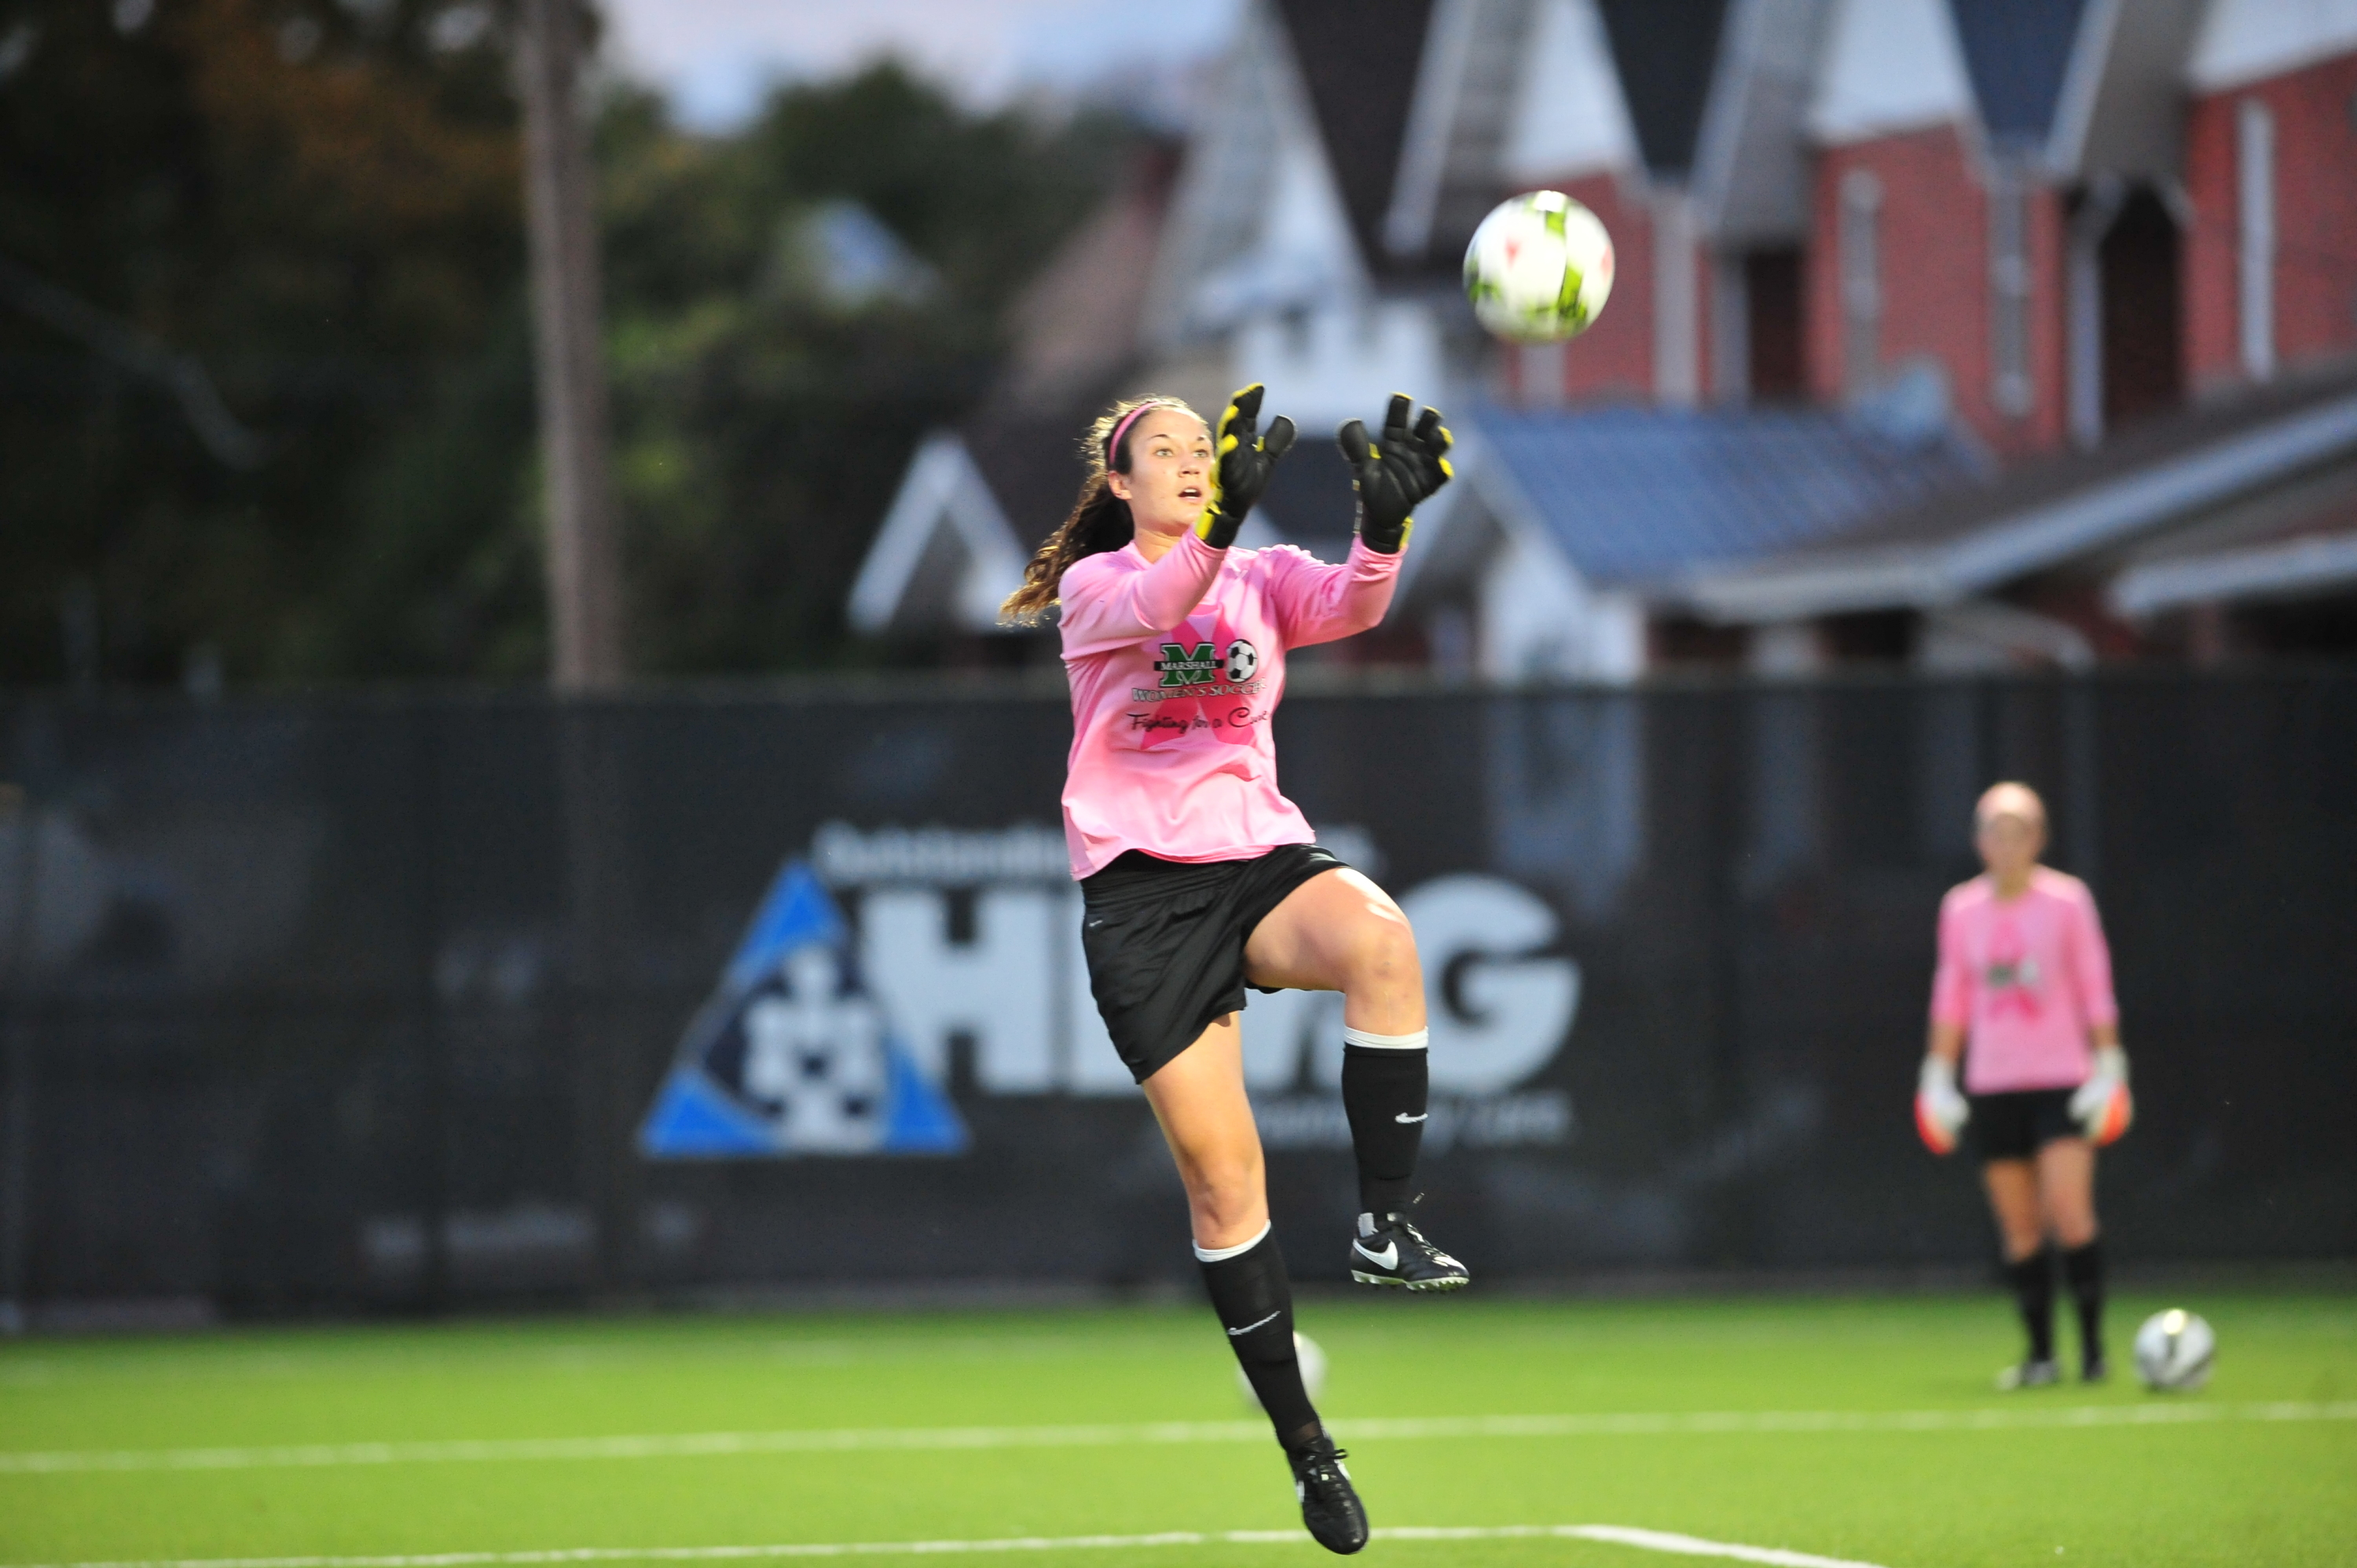 Lizzie Kish made four saves for the Herd.